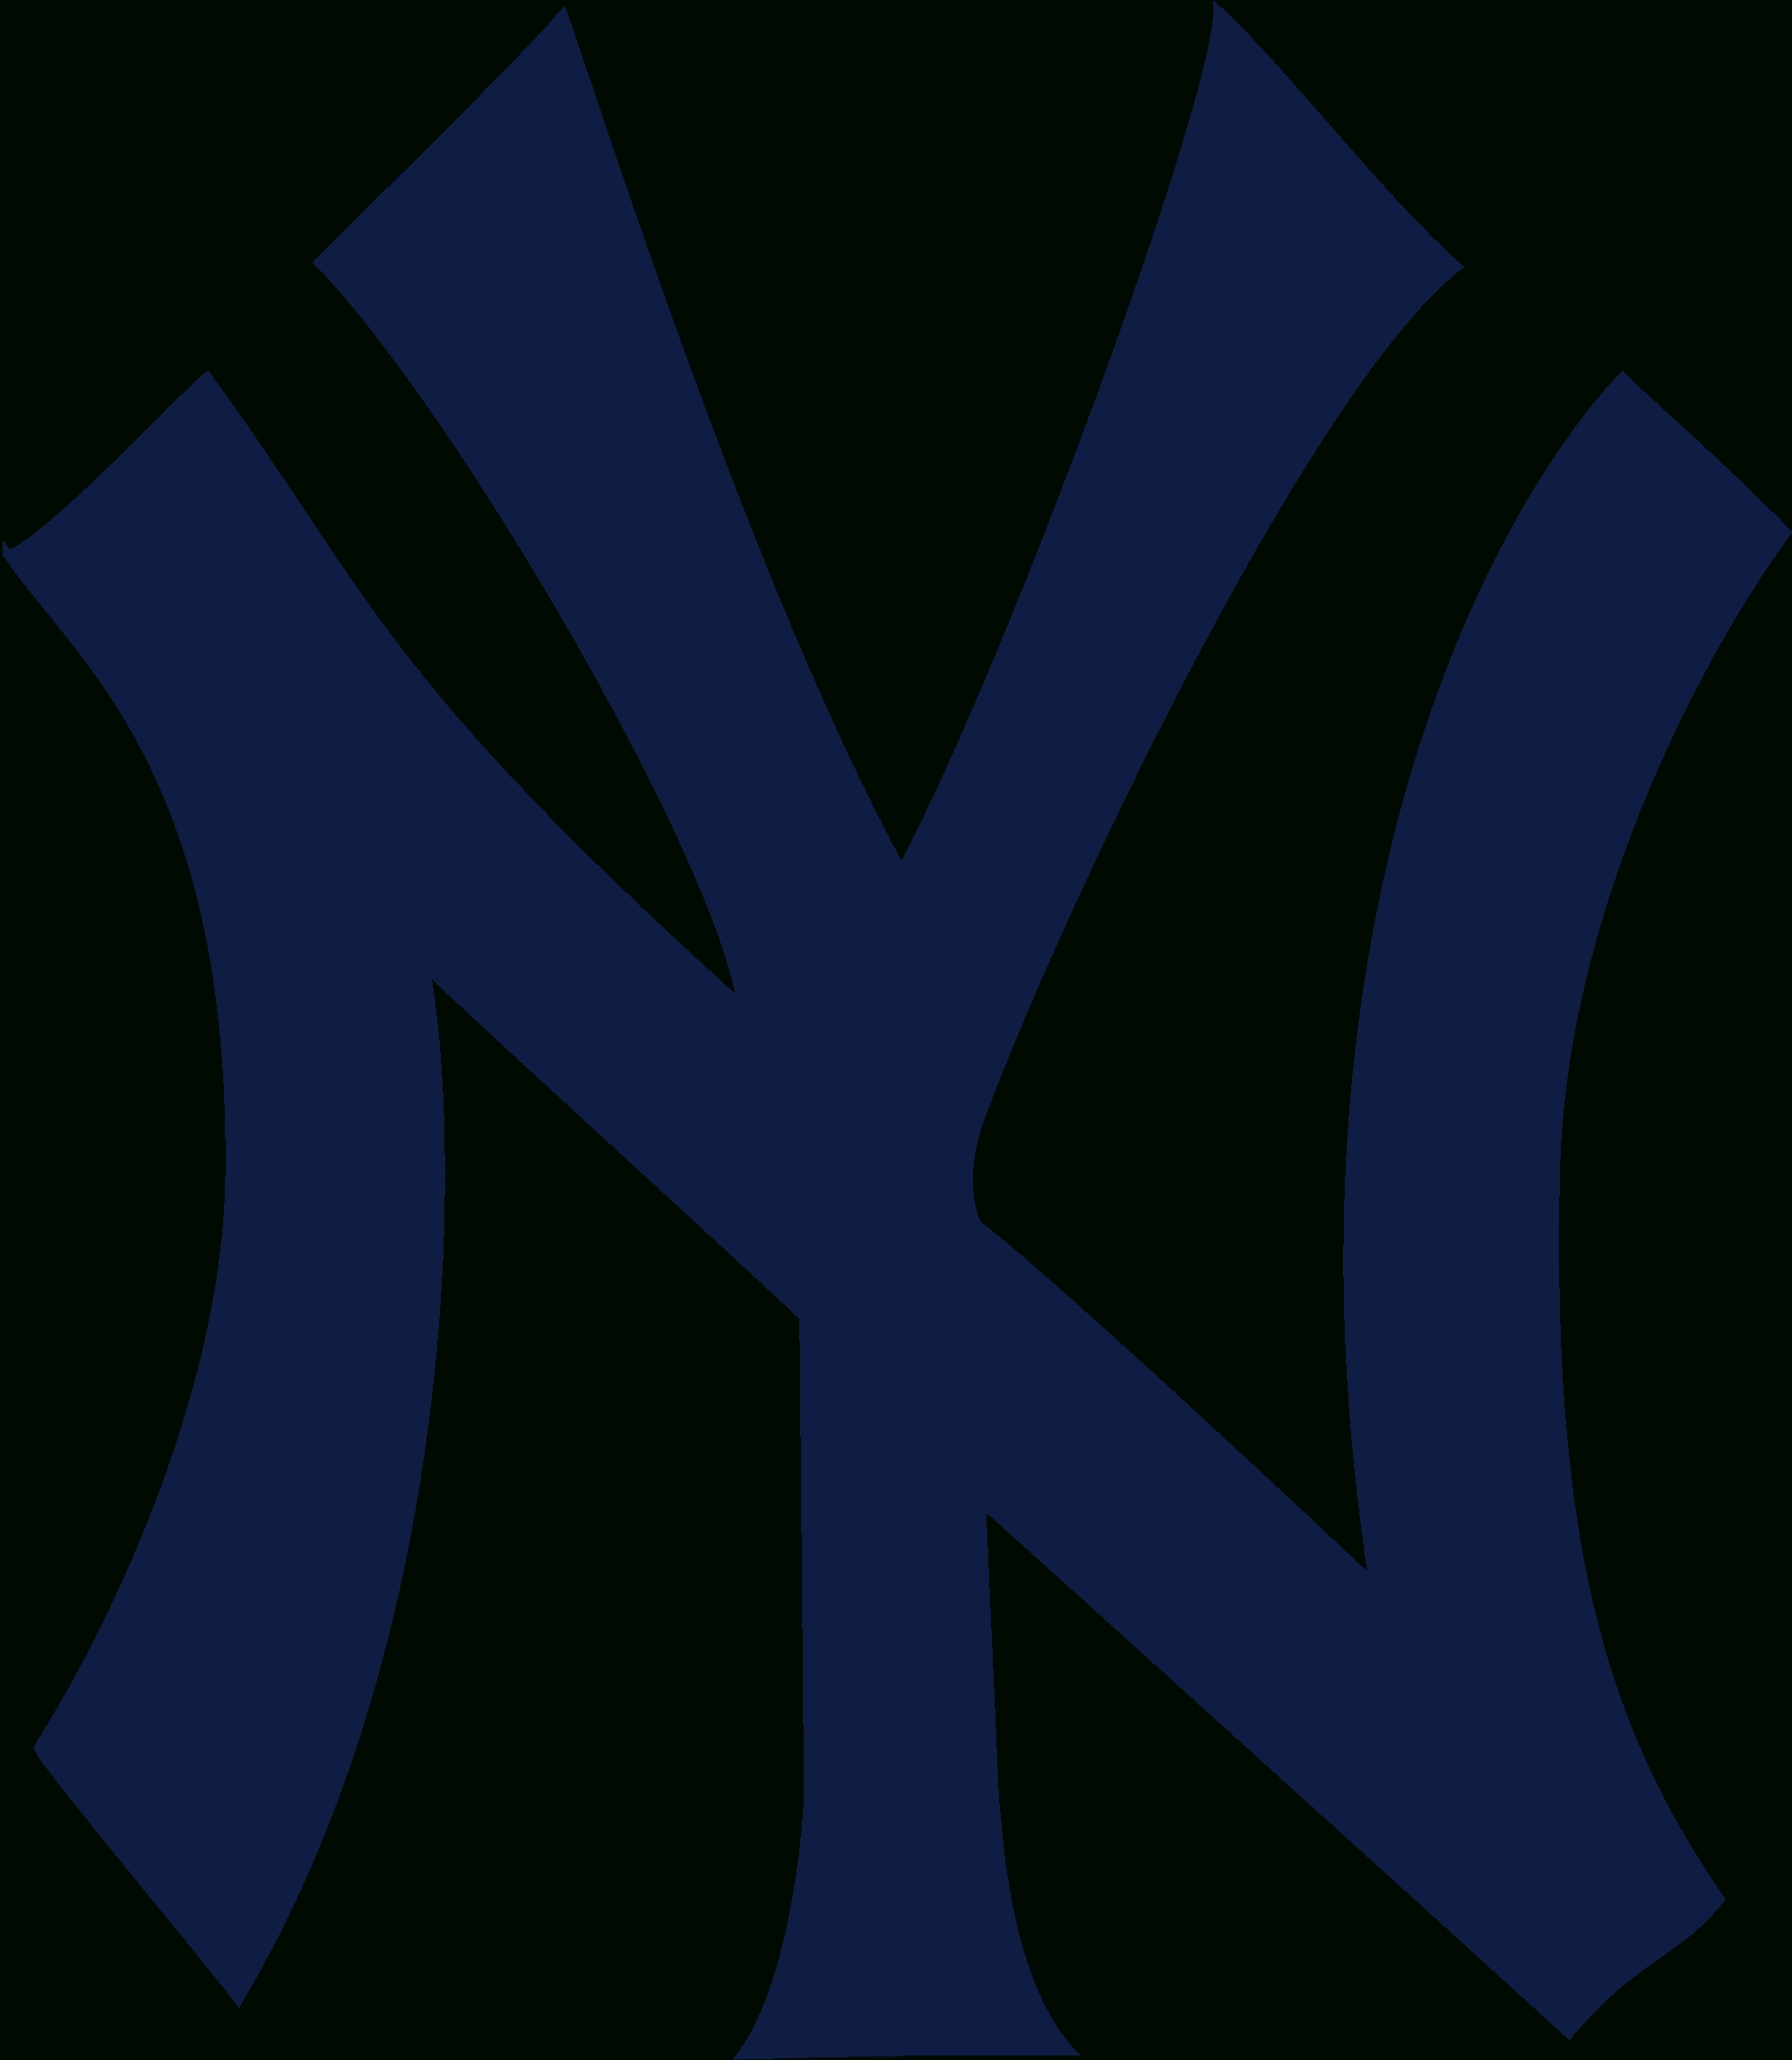 file:yankees logo.svg - wikimedia commons